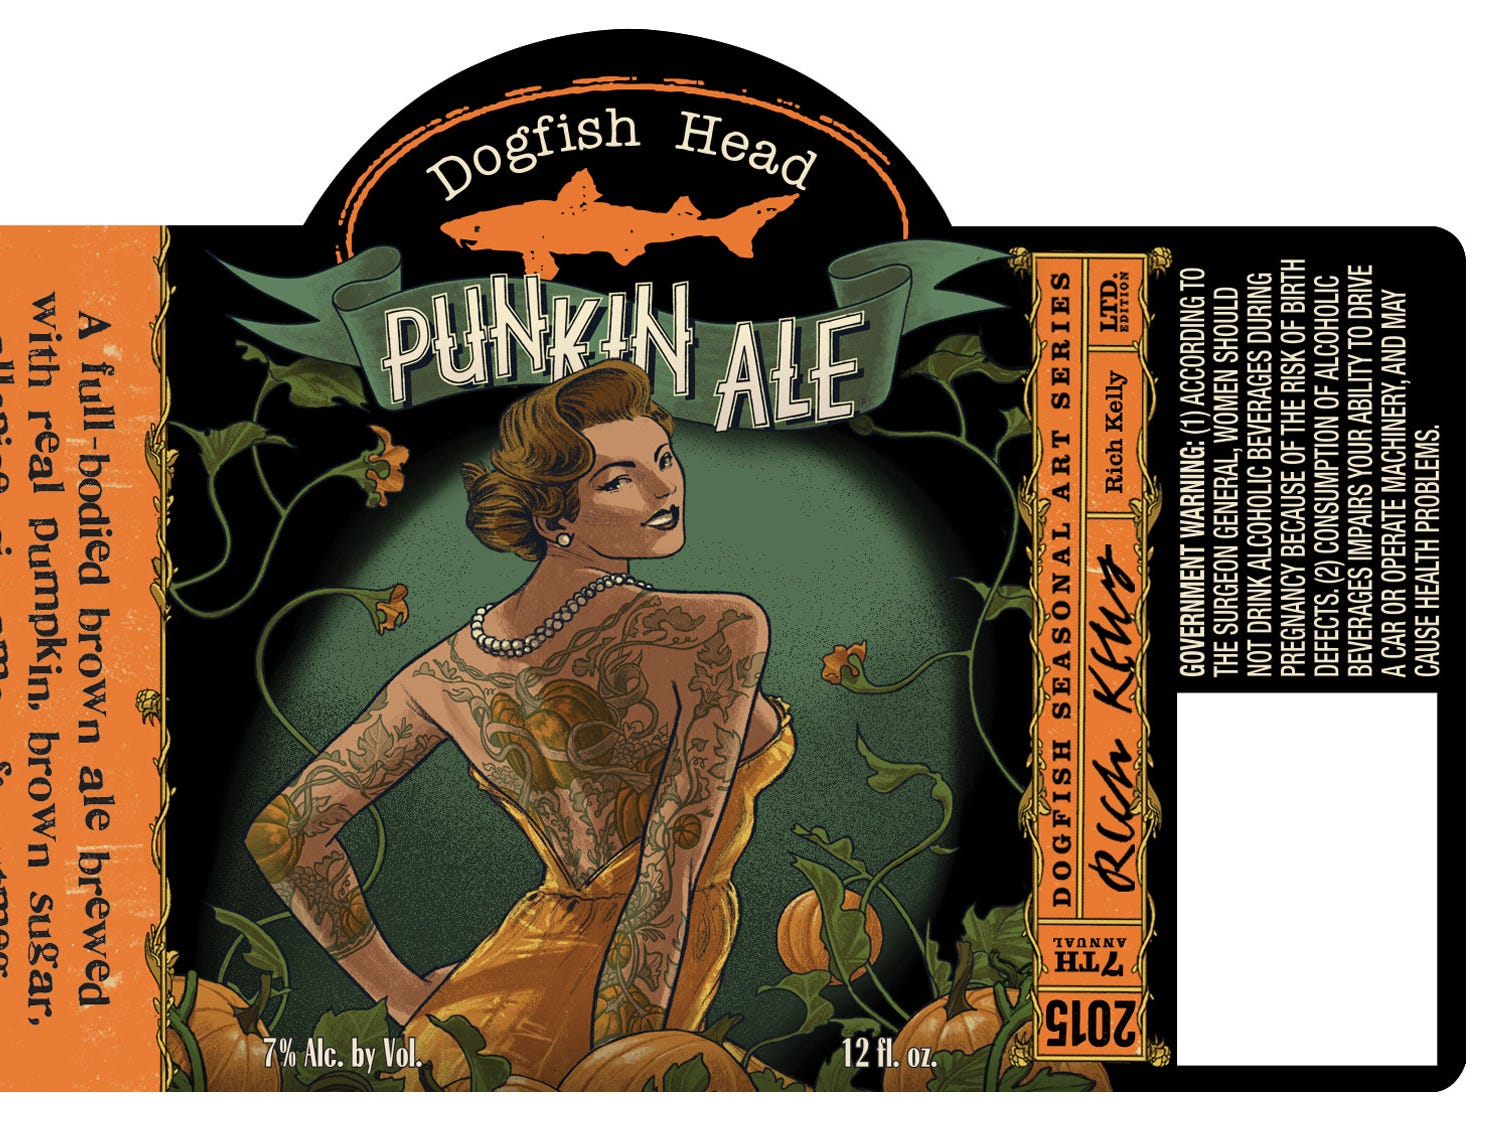 Dogfish Head's Punkin Ale label for 2015.